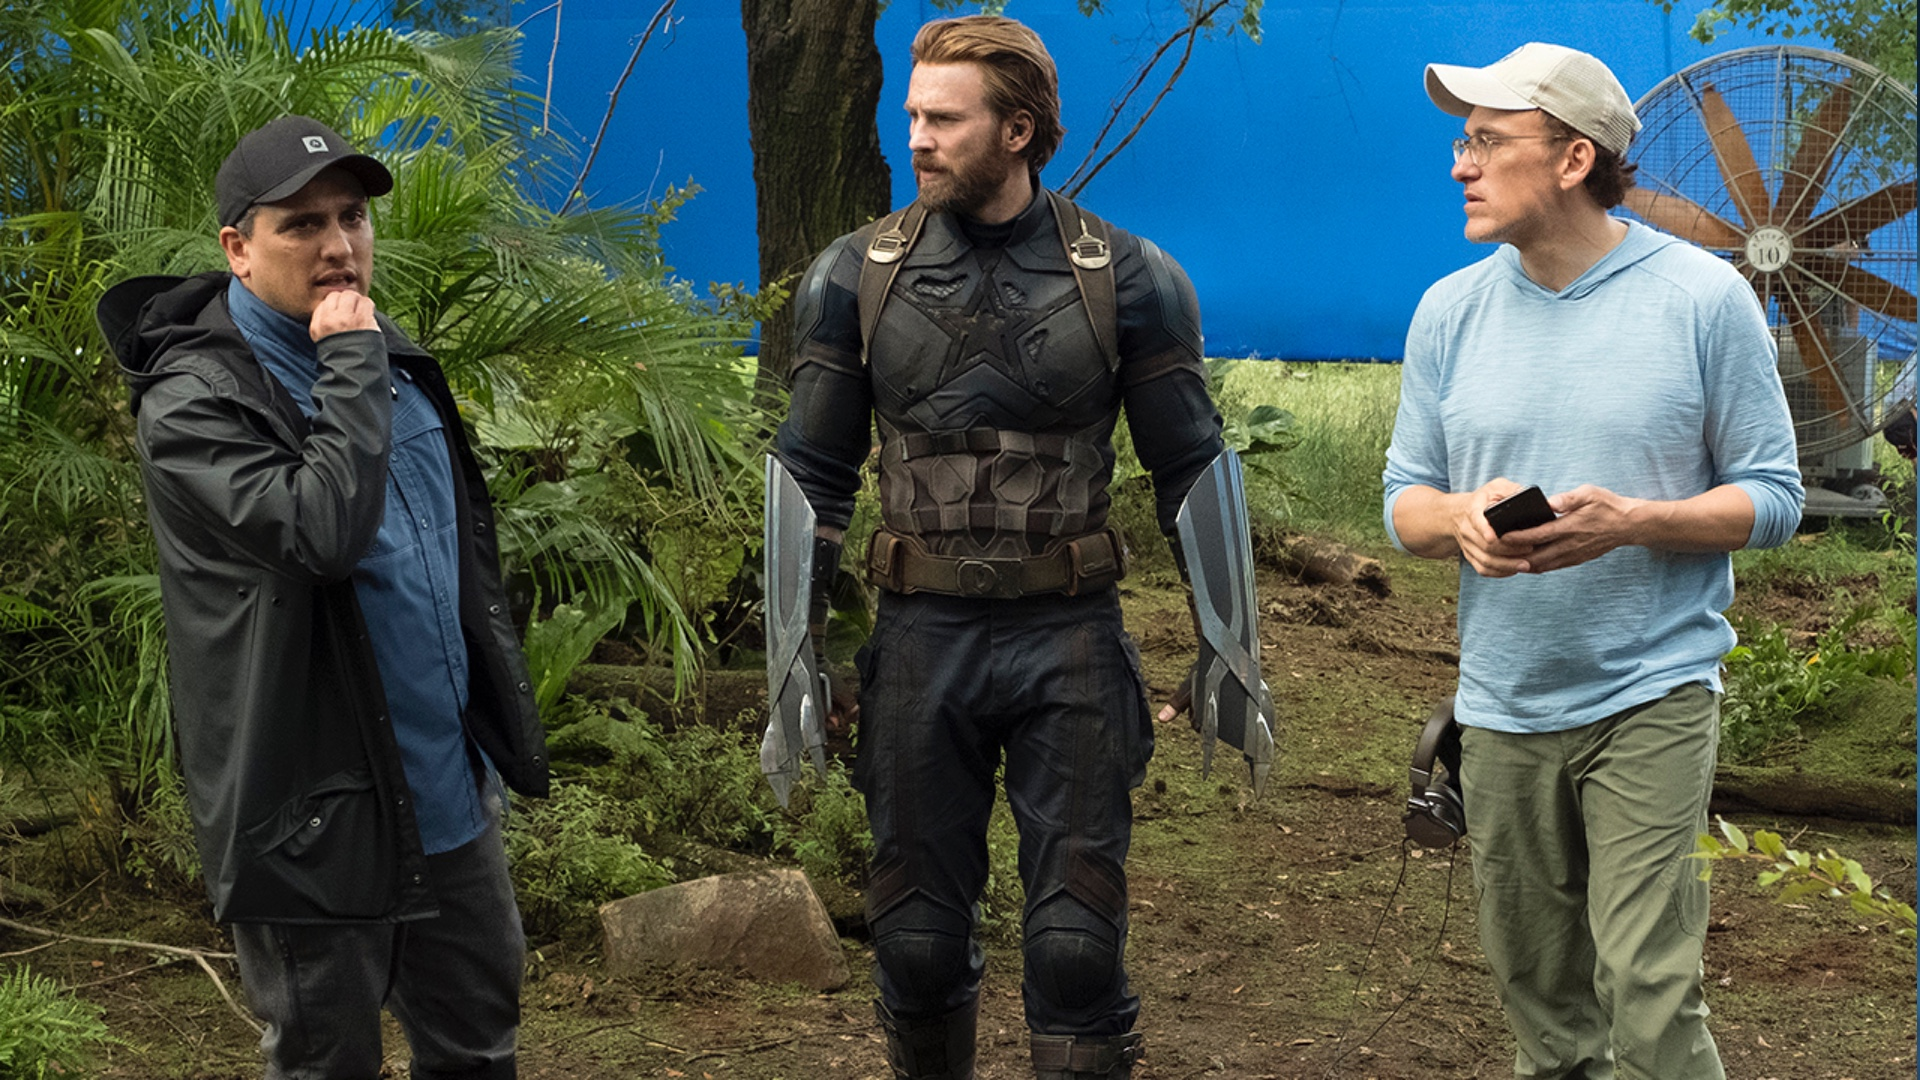 here-are-some-highlights-about-avengers-4-from-the-live-qampa-with-joe-russo-social.jpg